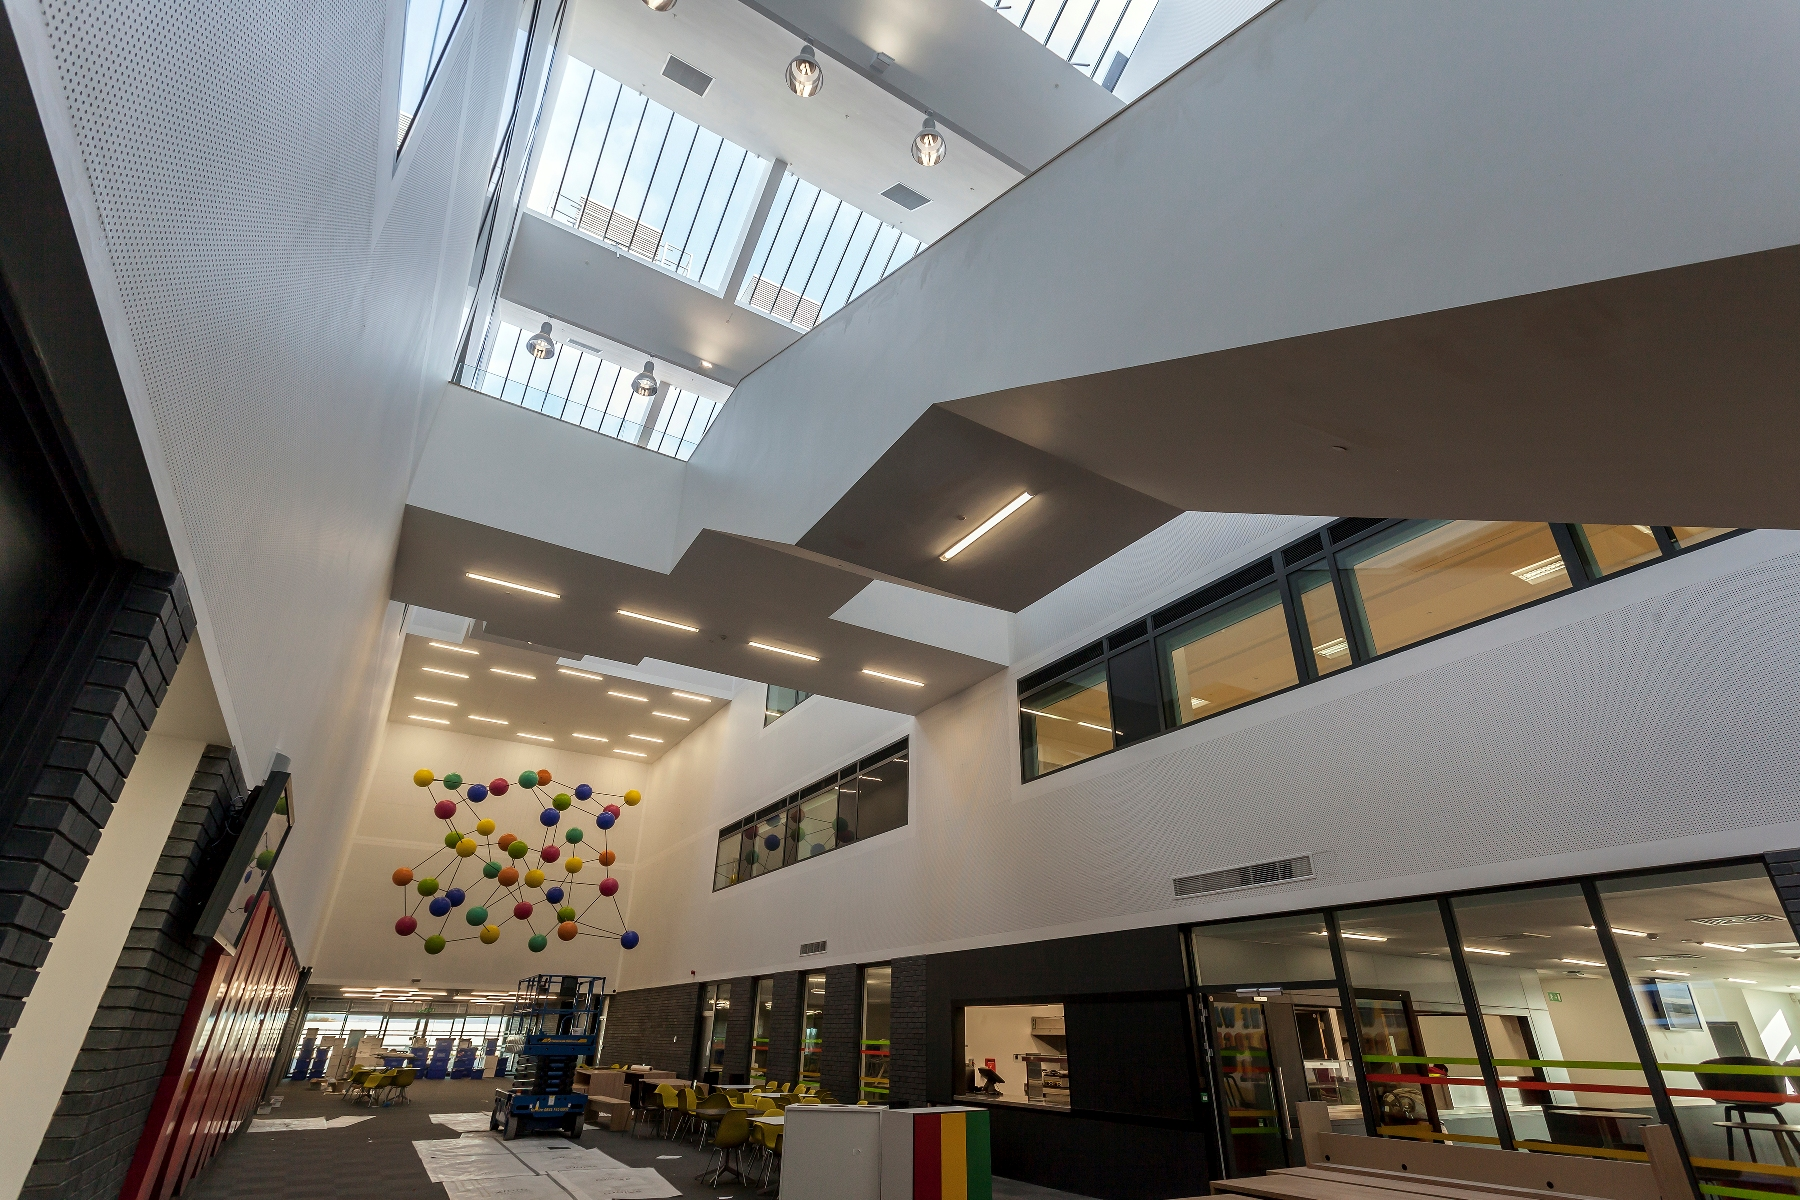 Kingswood college building schools for the future hull for Home decor hull limited